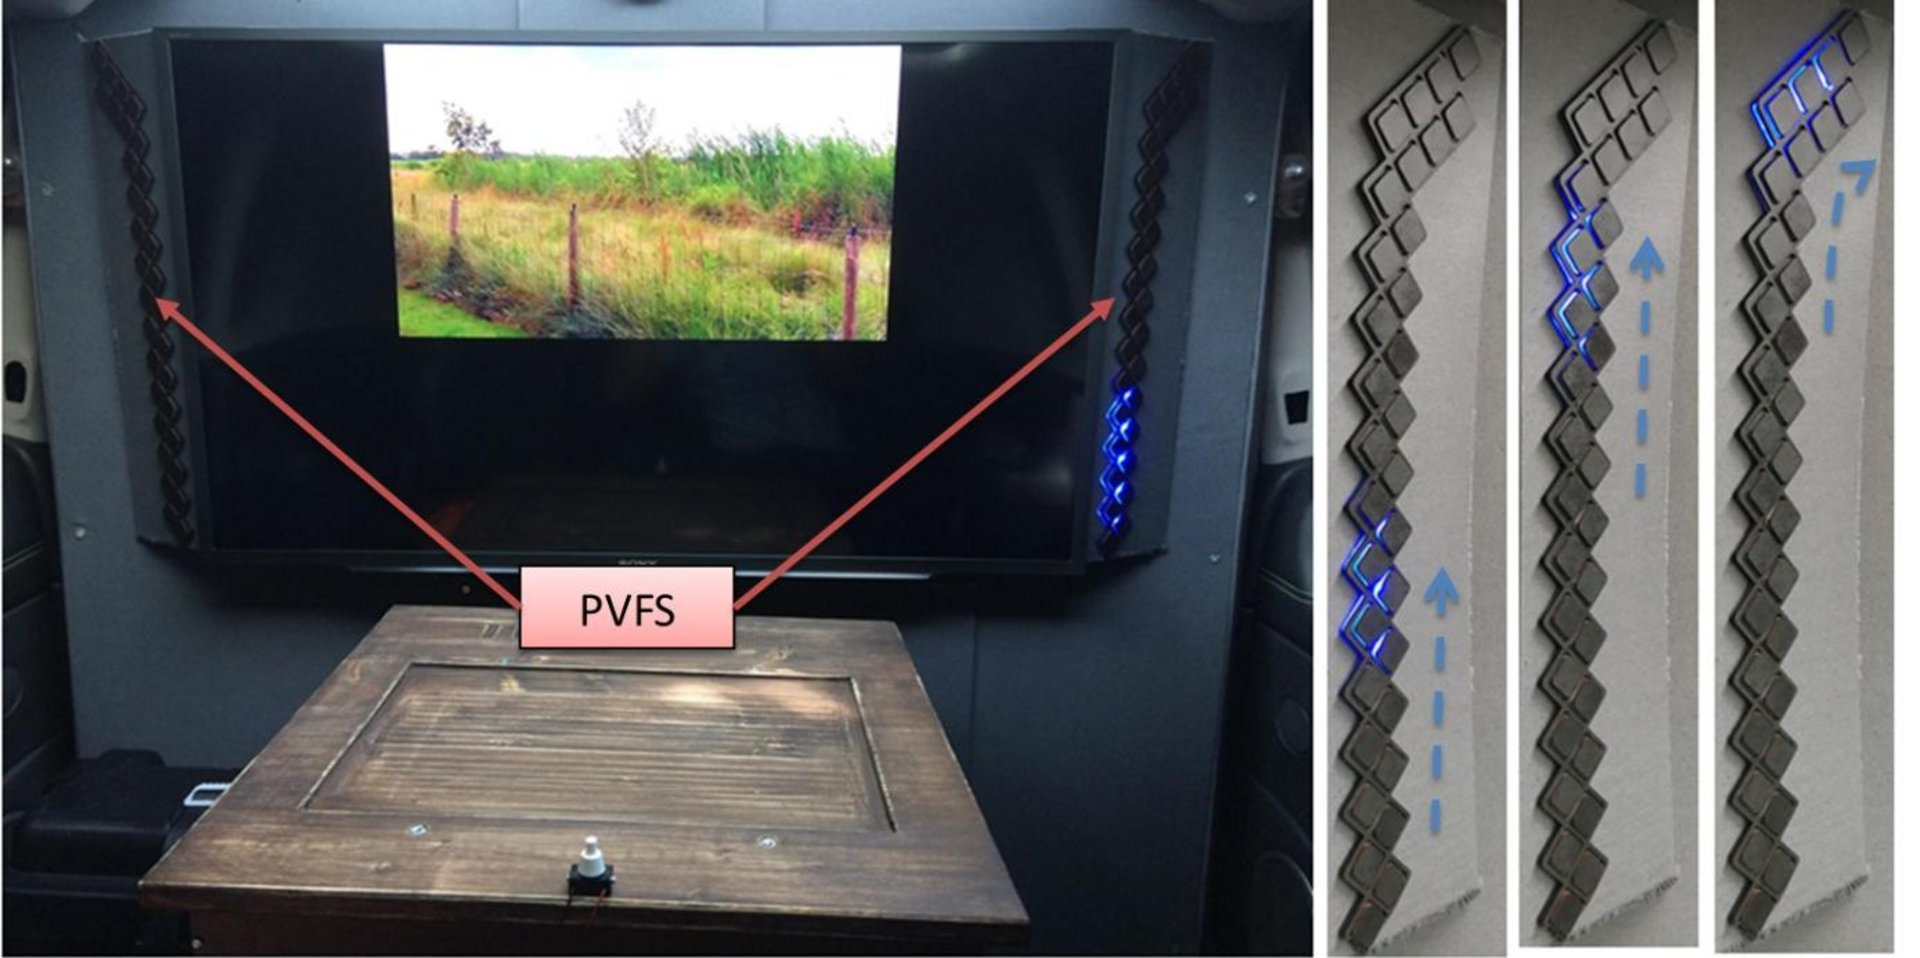 Peripheral visual feedforward system (PVFS): (left) Positioning inside the Mobility Lab; (right) Light moving from bottom to top on the right side to indicate that the fully automated vehicle is about to turn to the right.